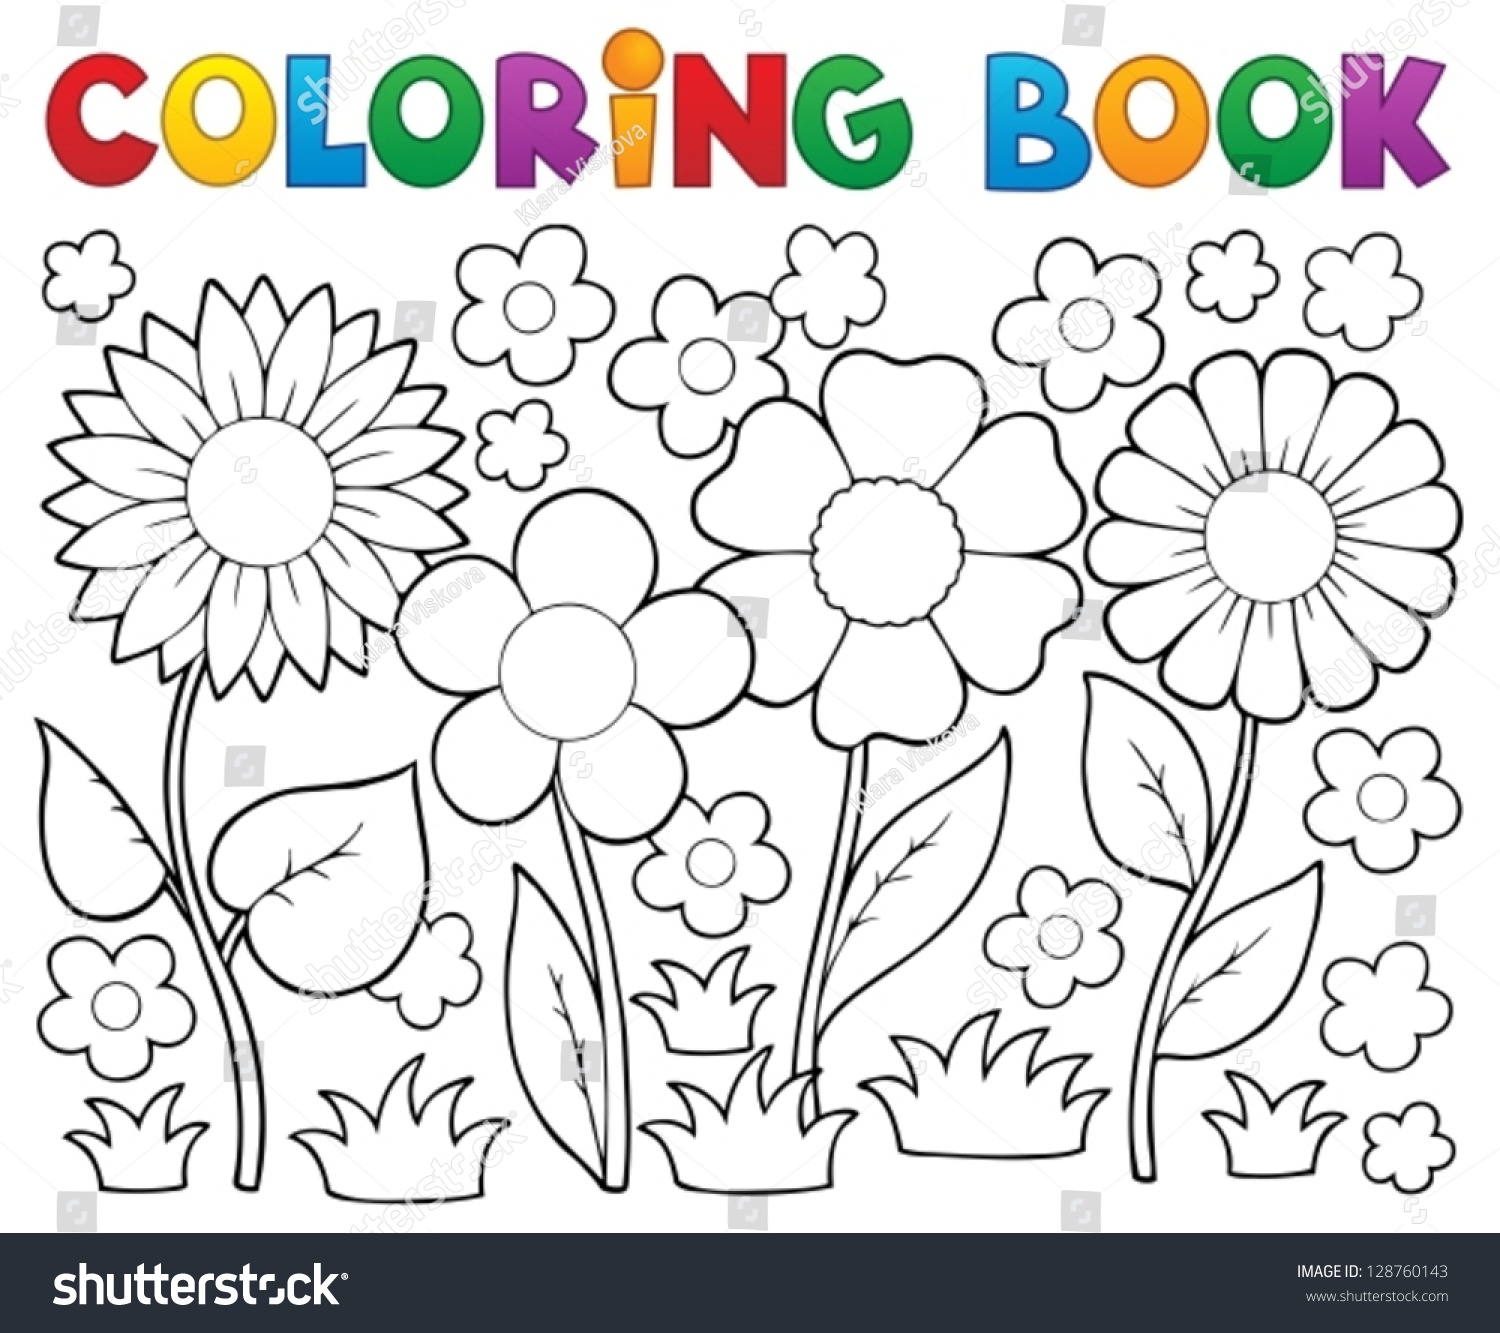 Coloring book for notability image photo editor shutterstock